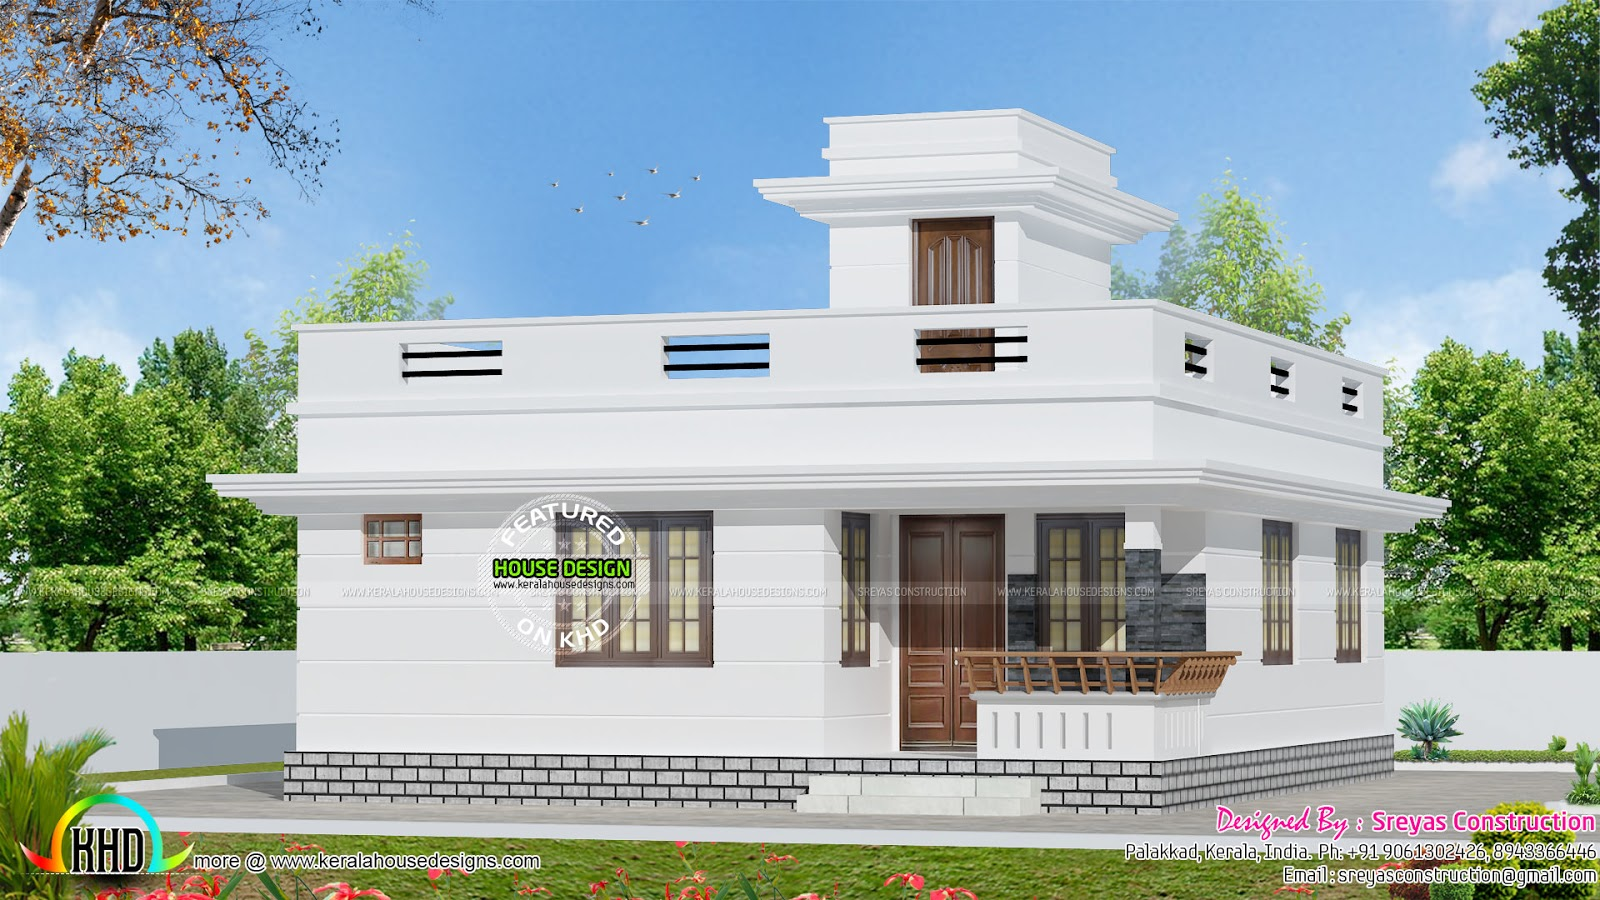 882 Sq Ft Small House Architecture Kerala Home Design: single room house design